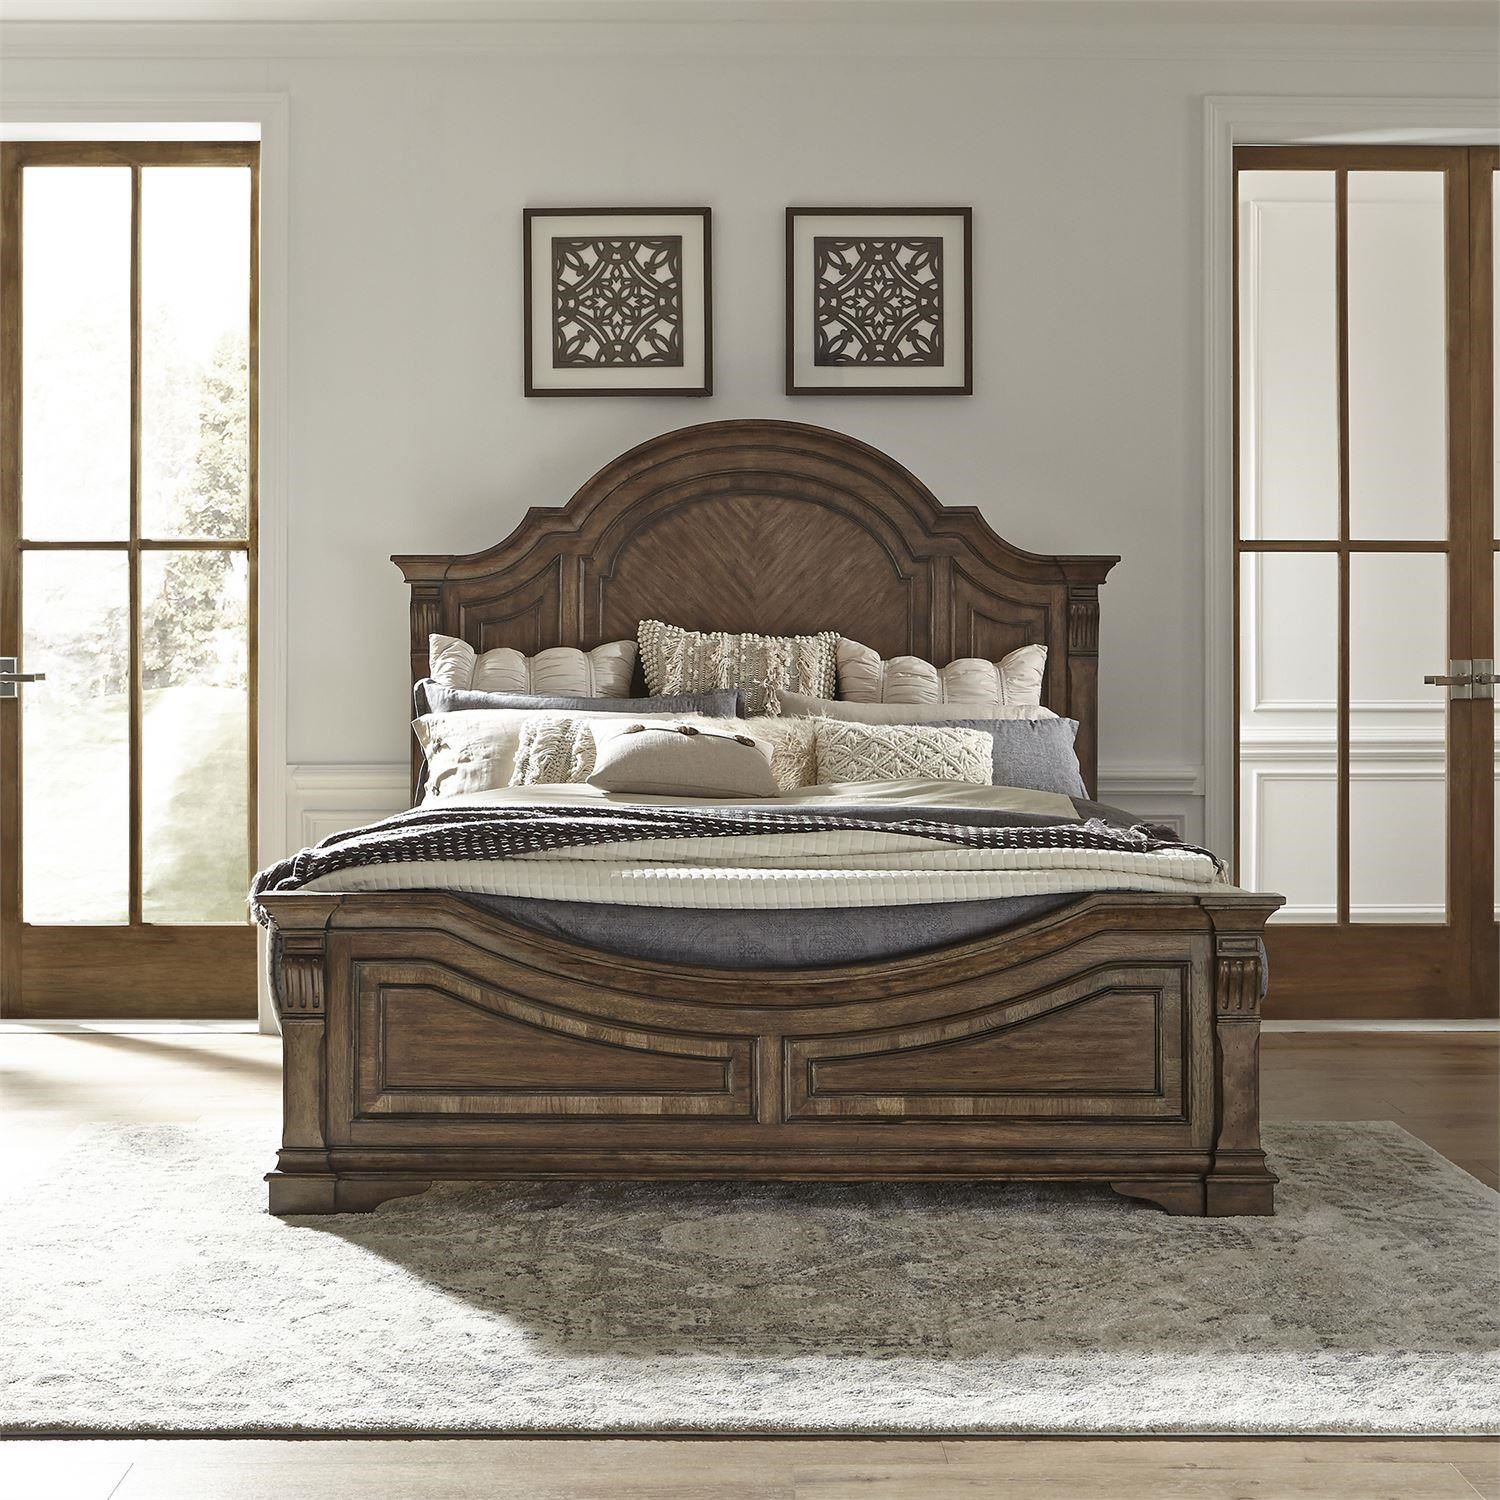 Queen Panel Bed w/Rails